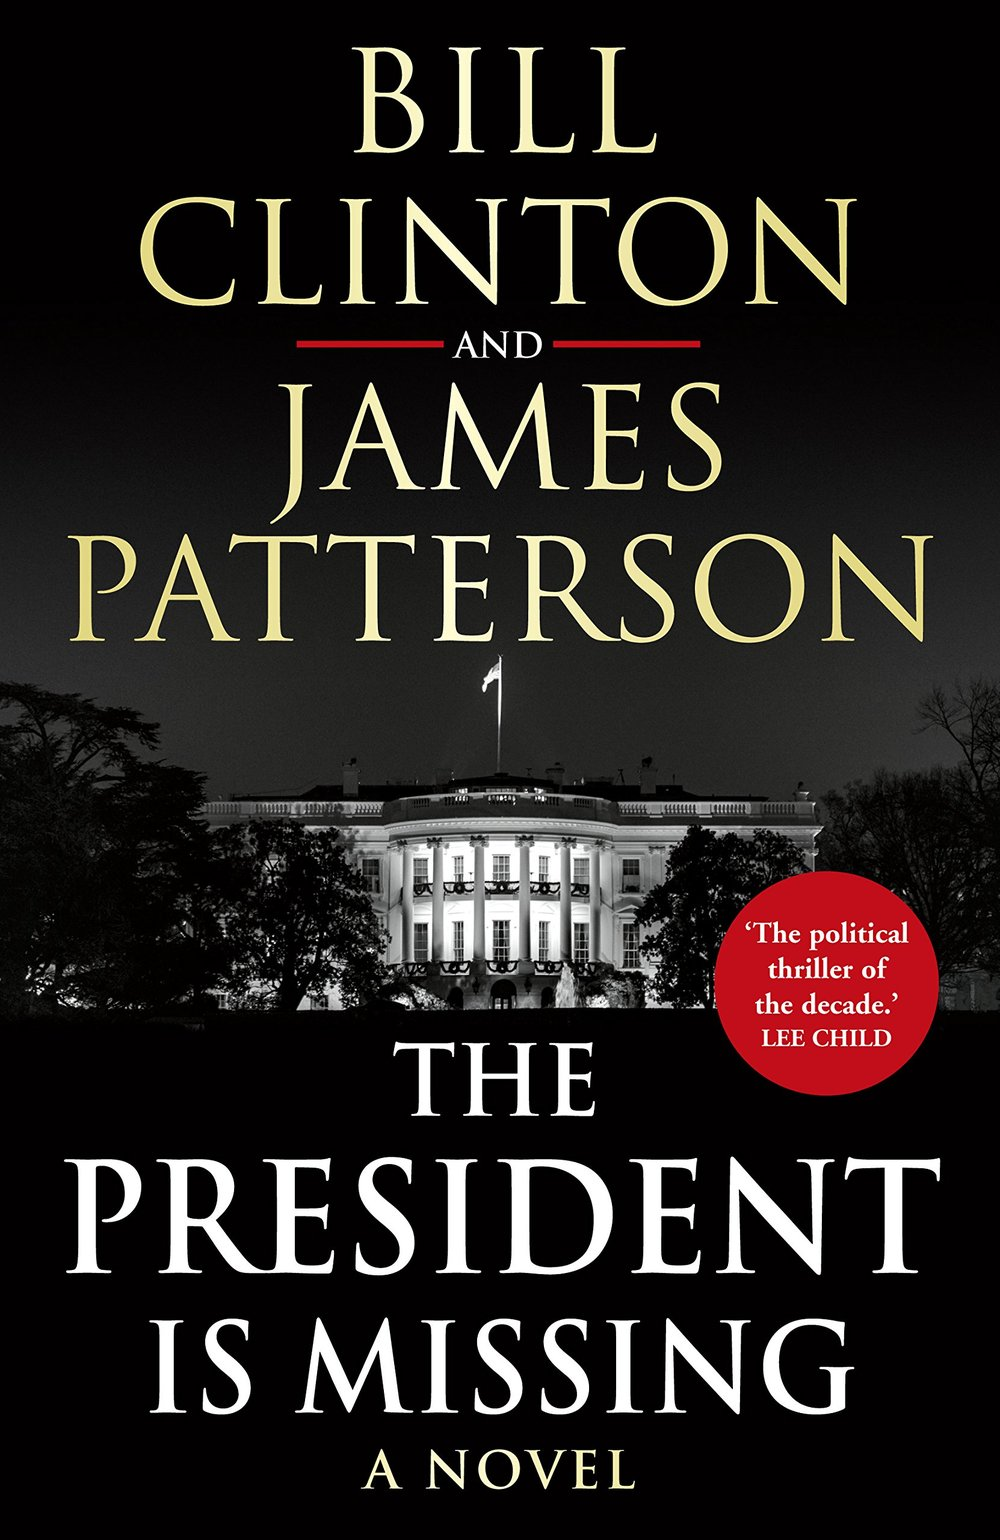 The President is MissingBy Bill Clinton and James Patterson - If you liked Scandal or House of Cards or Designated Survivor... you'll love this.Because The President is missing and the world is in shock.But the reason he's missing is much worse than anyone can imagine.Bill Clinton gives you a glimpse of what it's like to be President on the three most frightening days in the history of presidency.Though it's fiction, it brings some great conversations about the presidency, what life in Washington is really like, and about the state of America and the rest of the World.Order this now on Amazon by clicking here